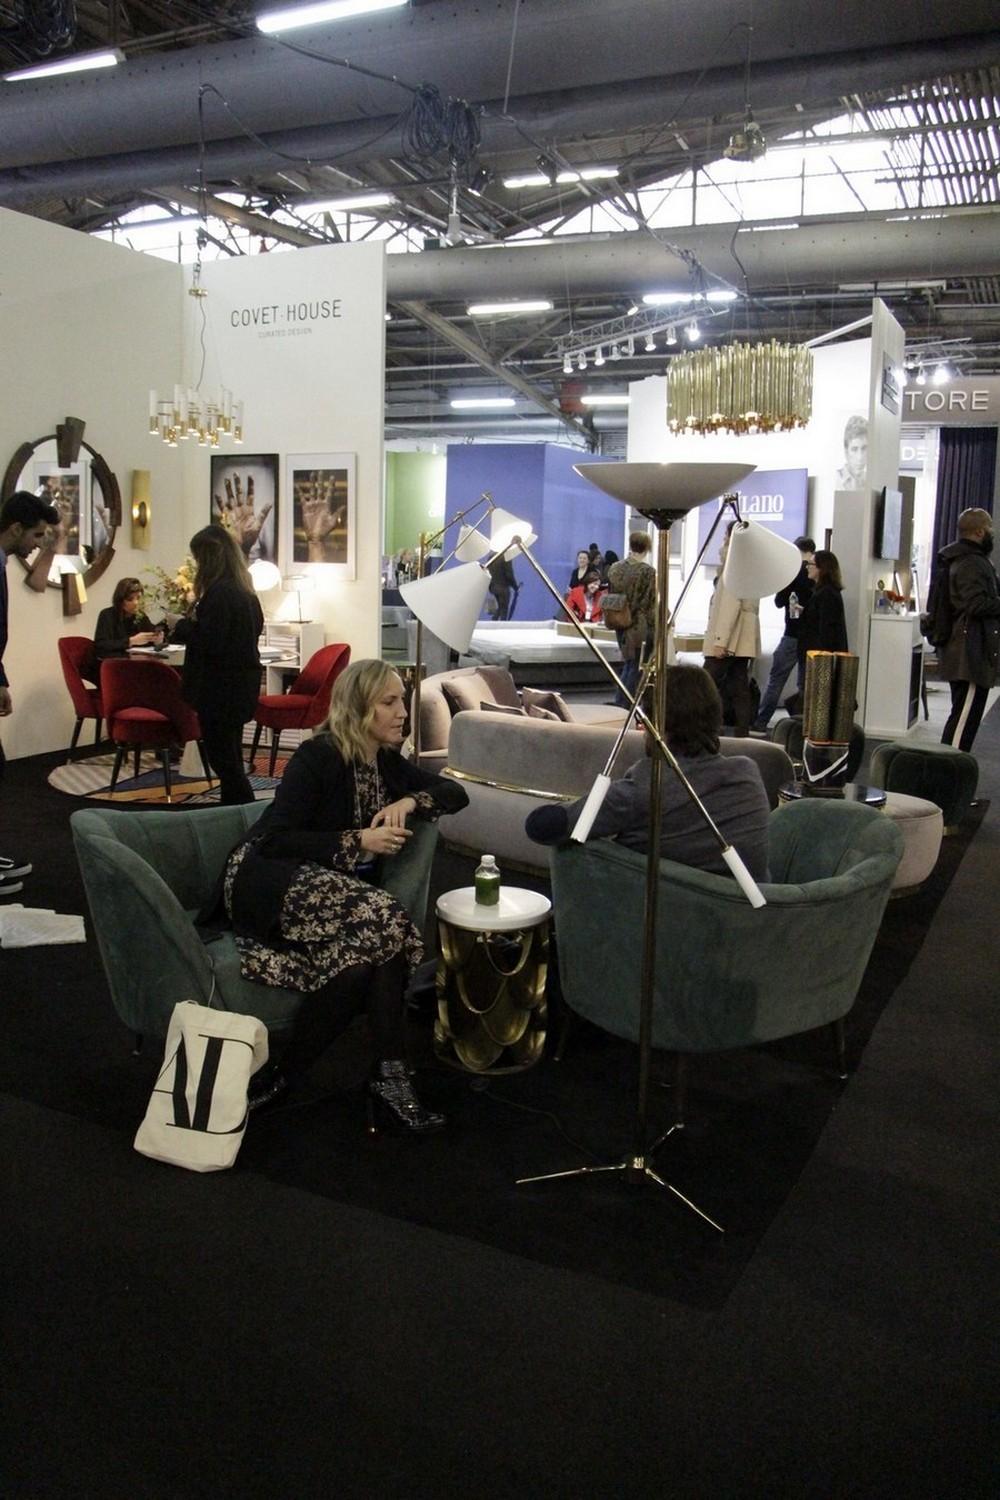 Covet House Blew Us Away At AD Design Show 2019 covet house Covet House Blew Us Away At AD Design Show 2019 Covet House Blew Us Away At AD Design Show 2019 2